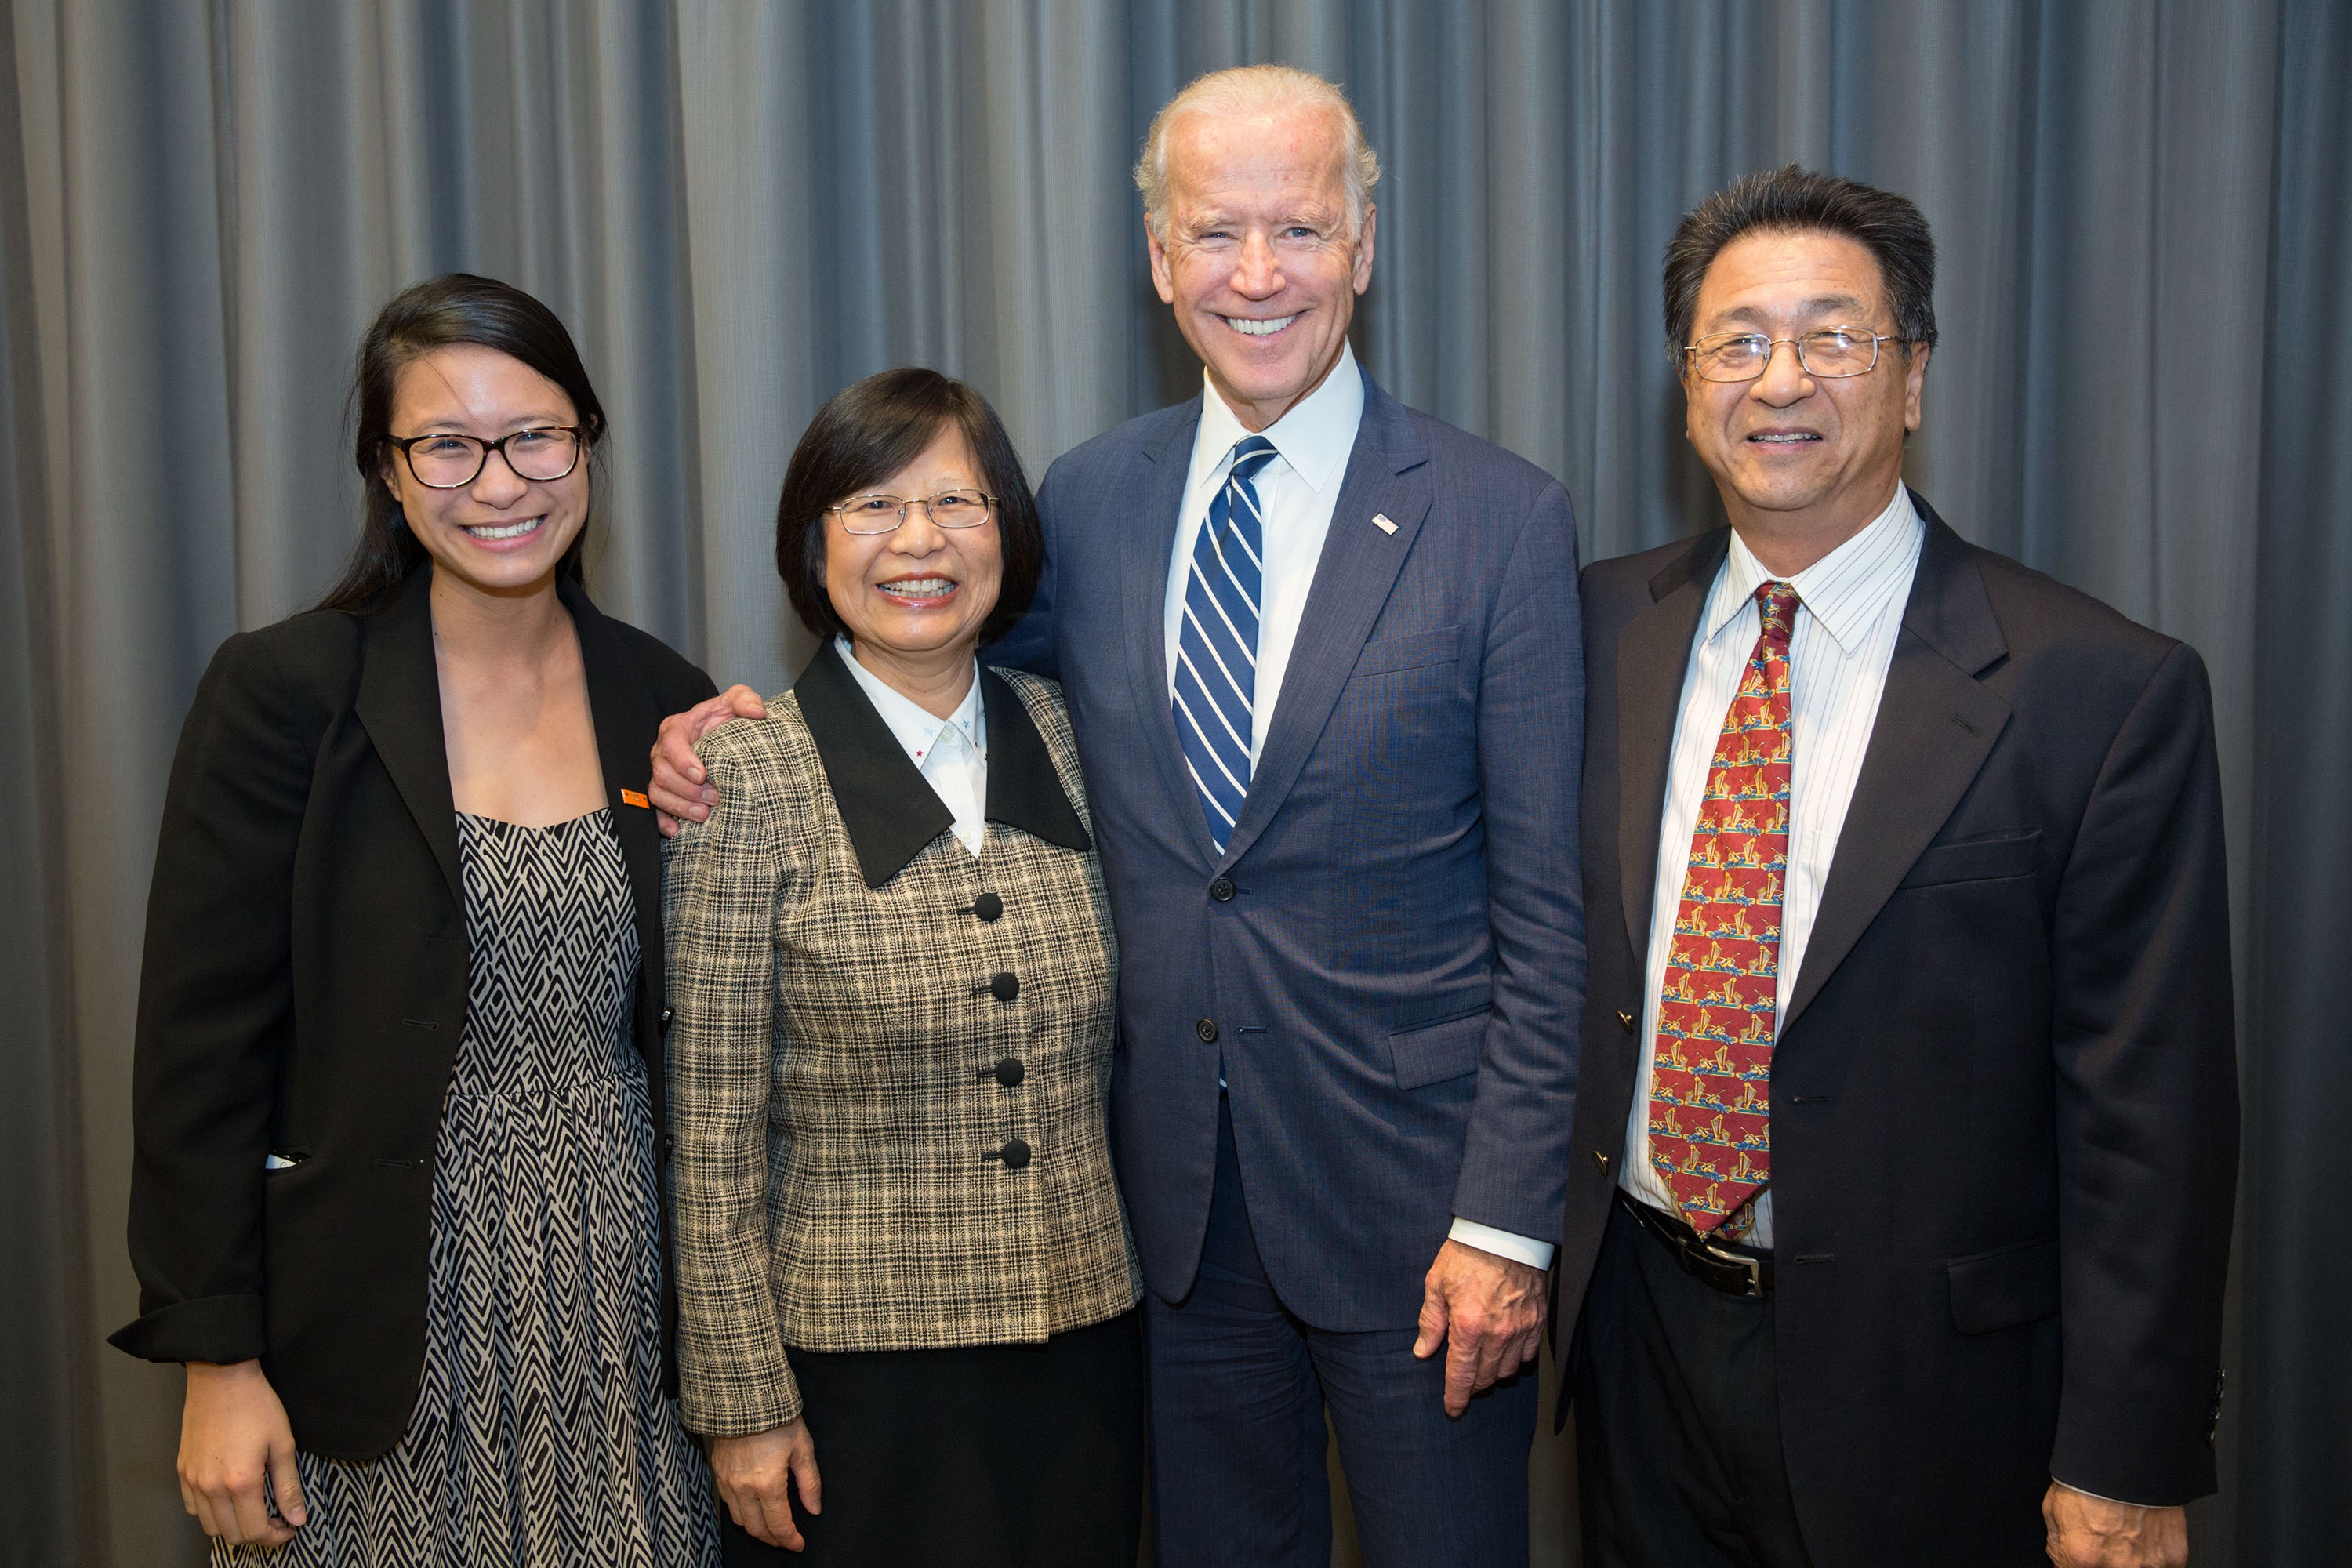 The Woo Family & VP Biden